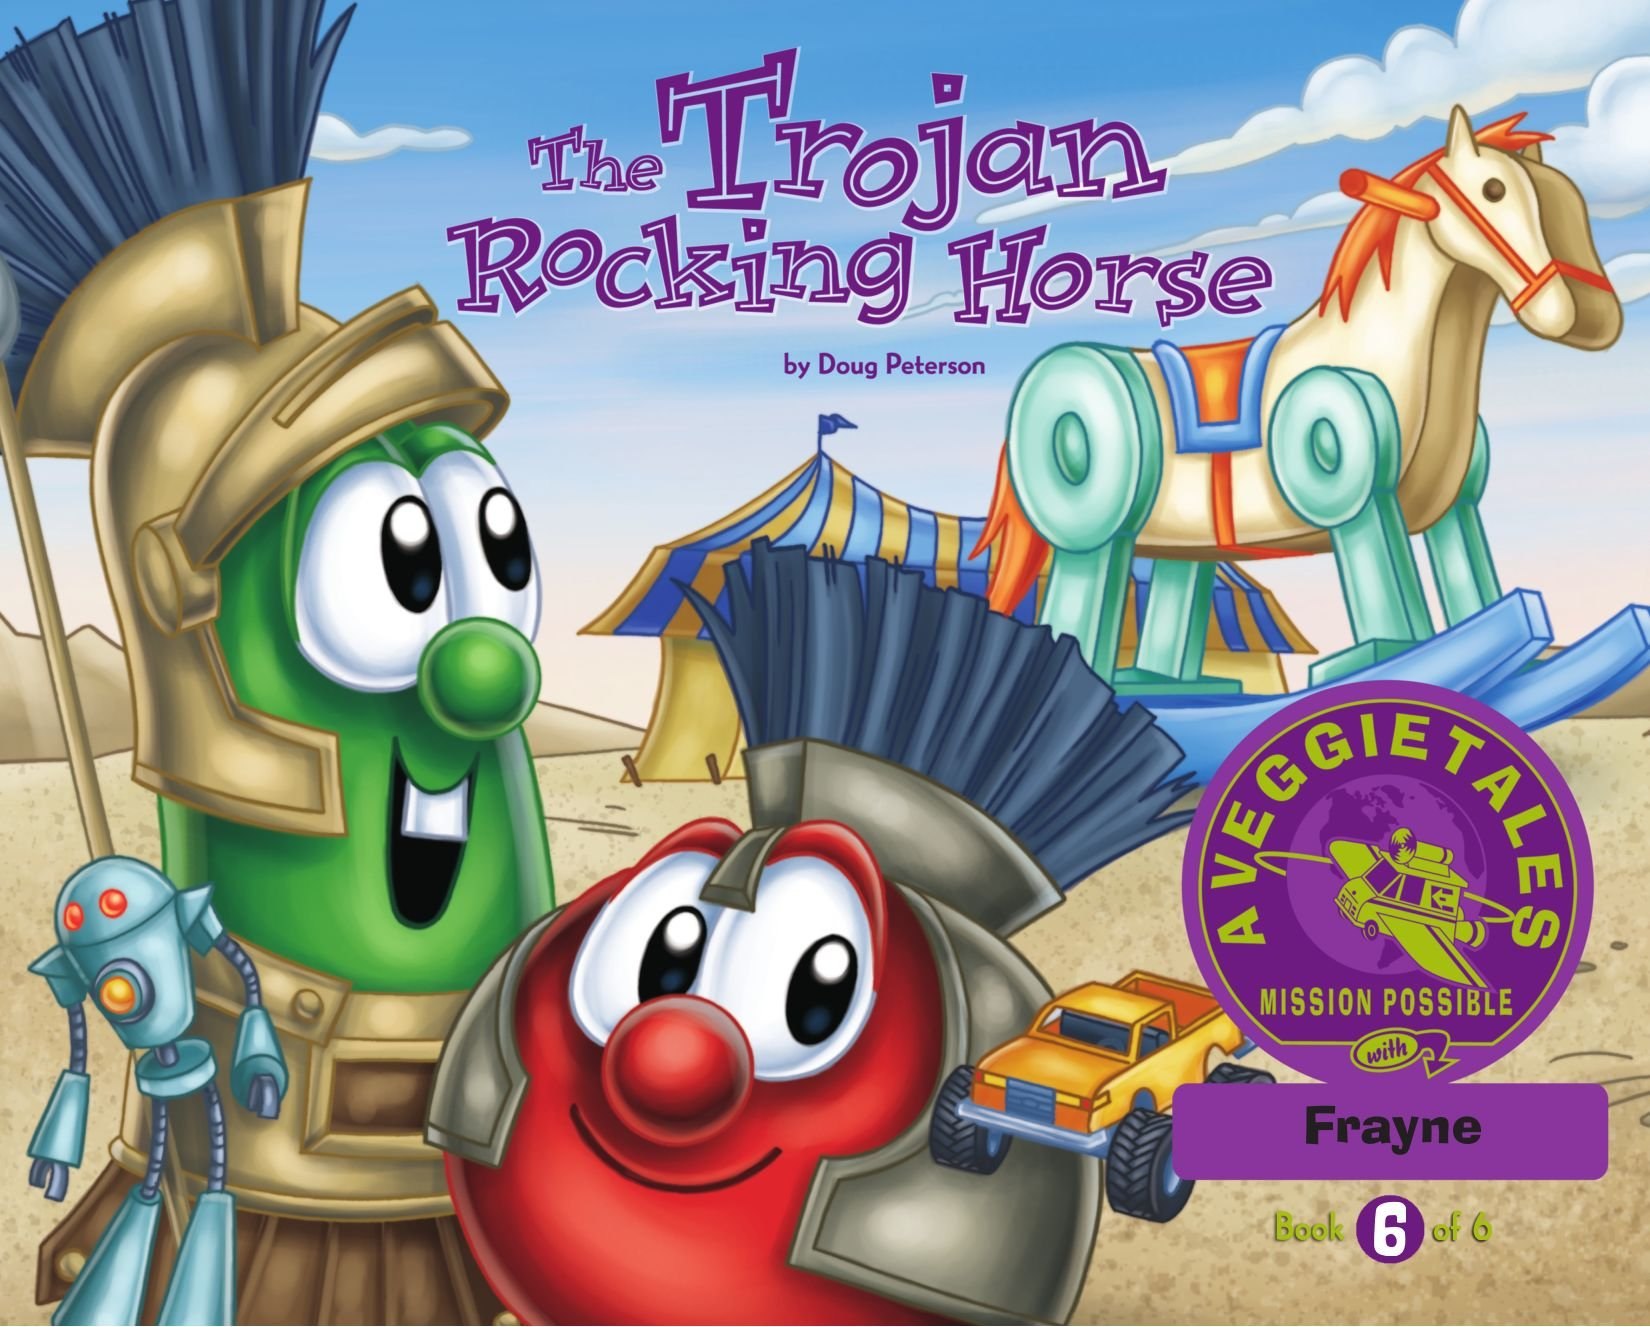 The Trojan Rocking Horse - VeggieTales Mission Possible Adventure Series #6: Personalized for Frayne (Girl) PDF ePub book